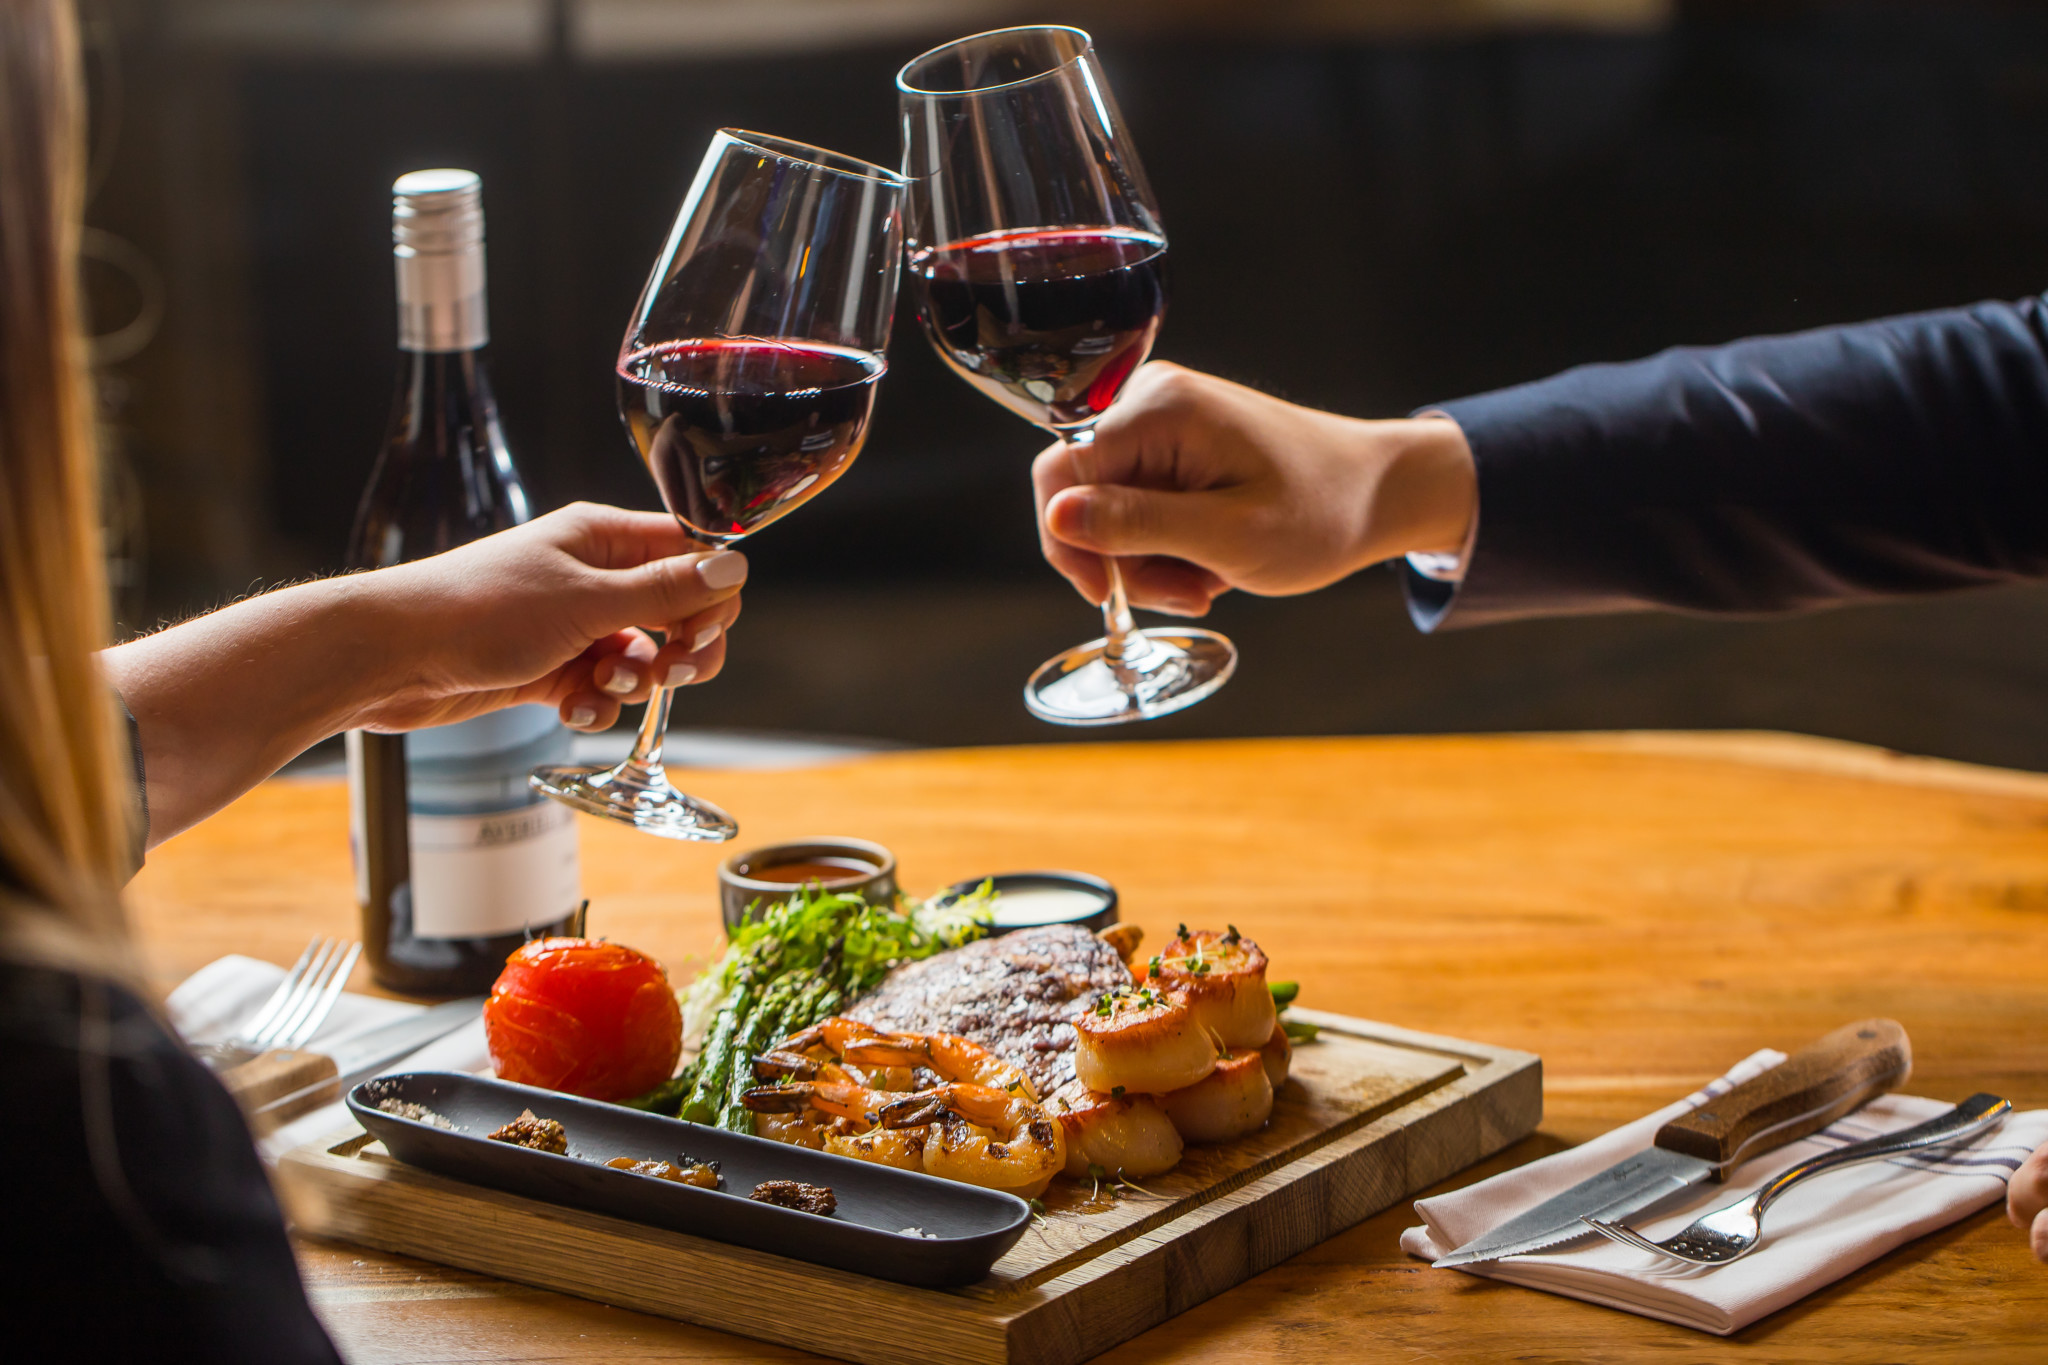 Love is in the air this February at The Westin Bayshore, H2 Rotisserie & Bar and H Tasting Lounge